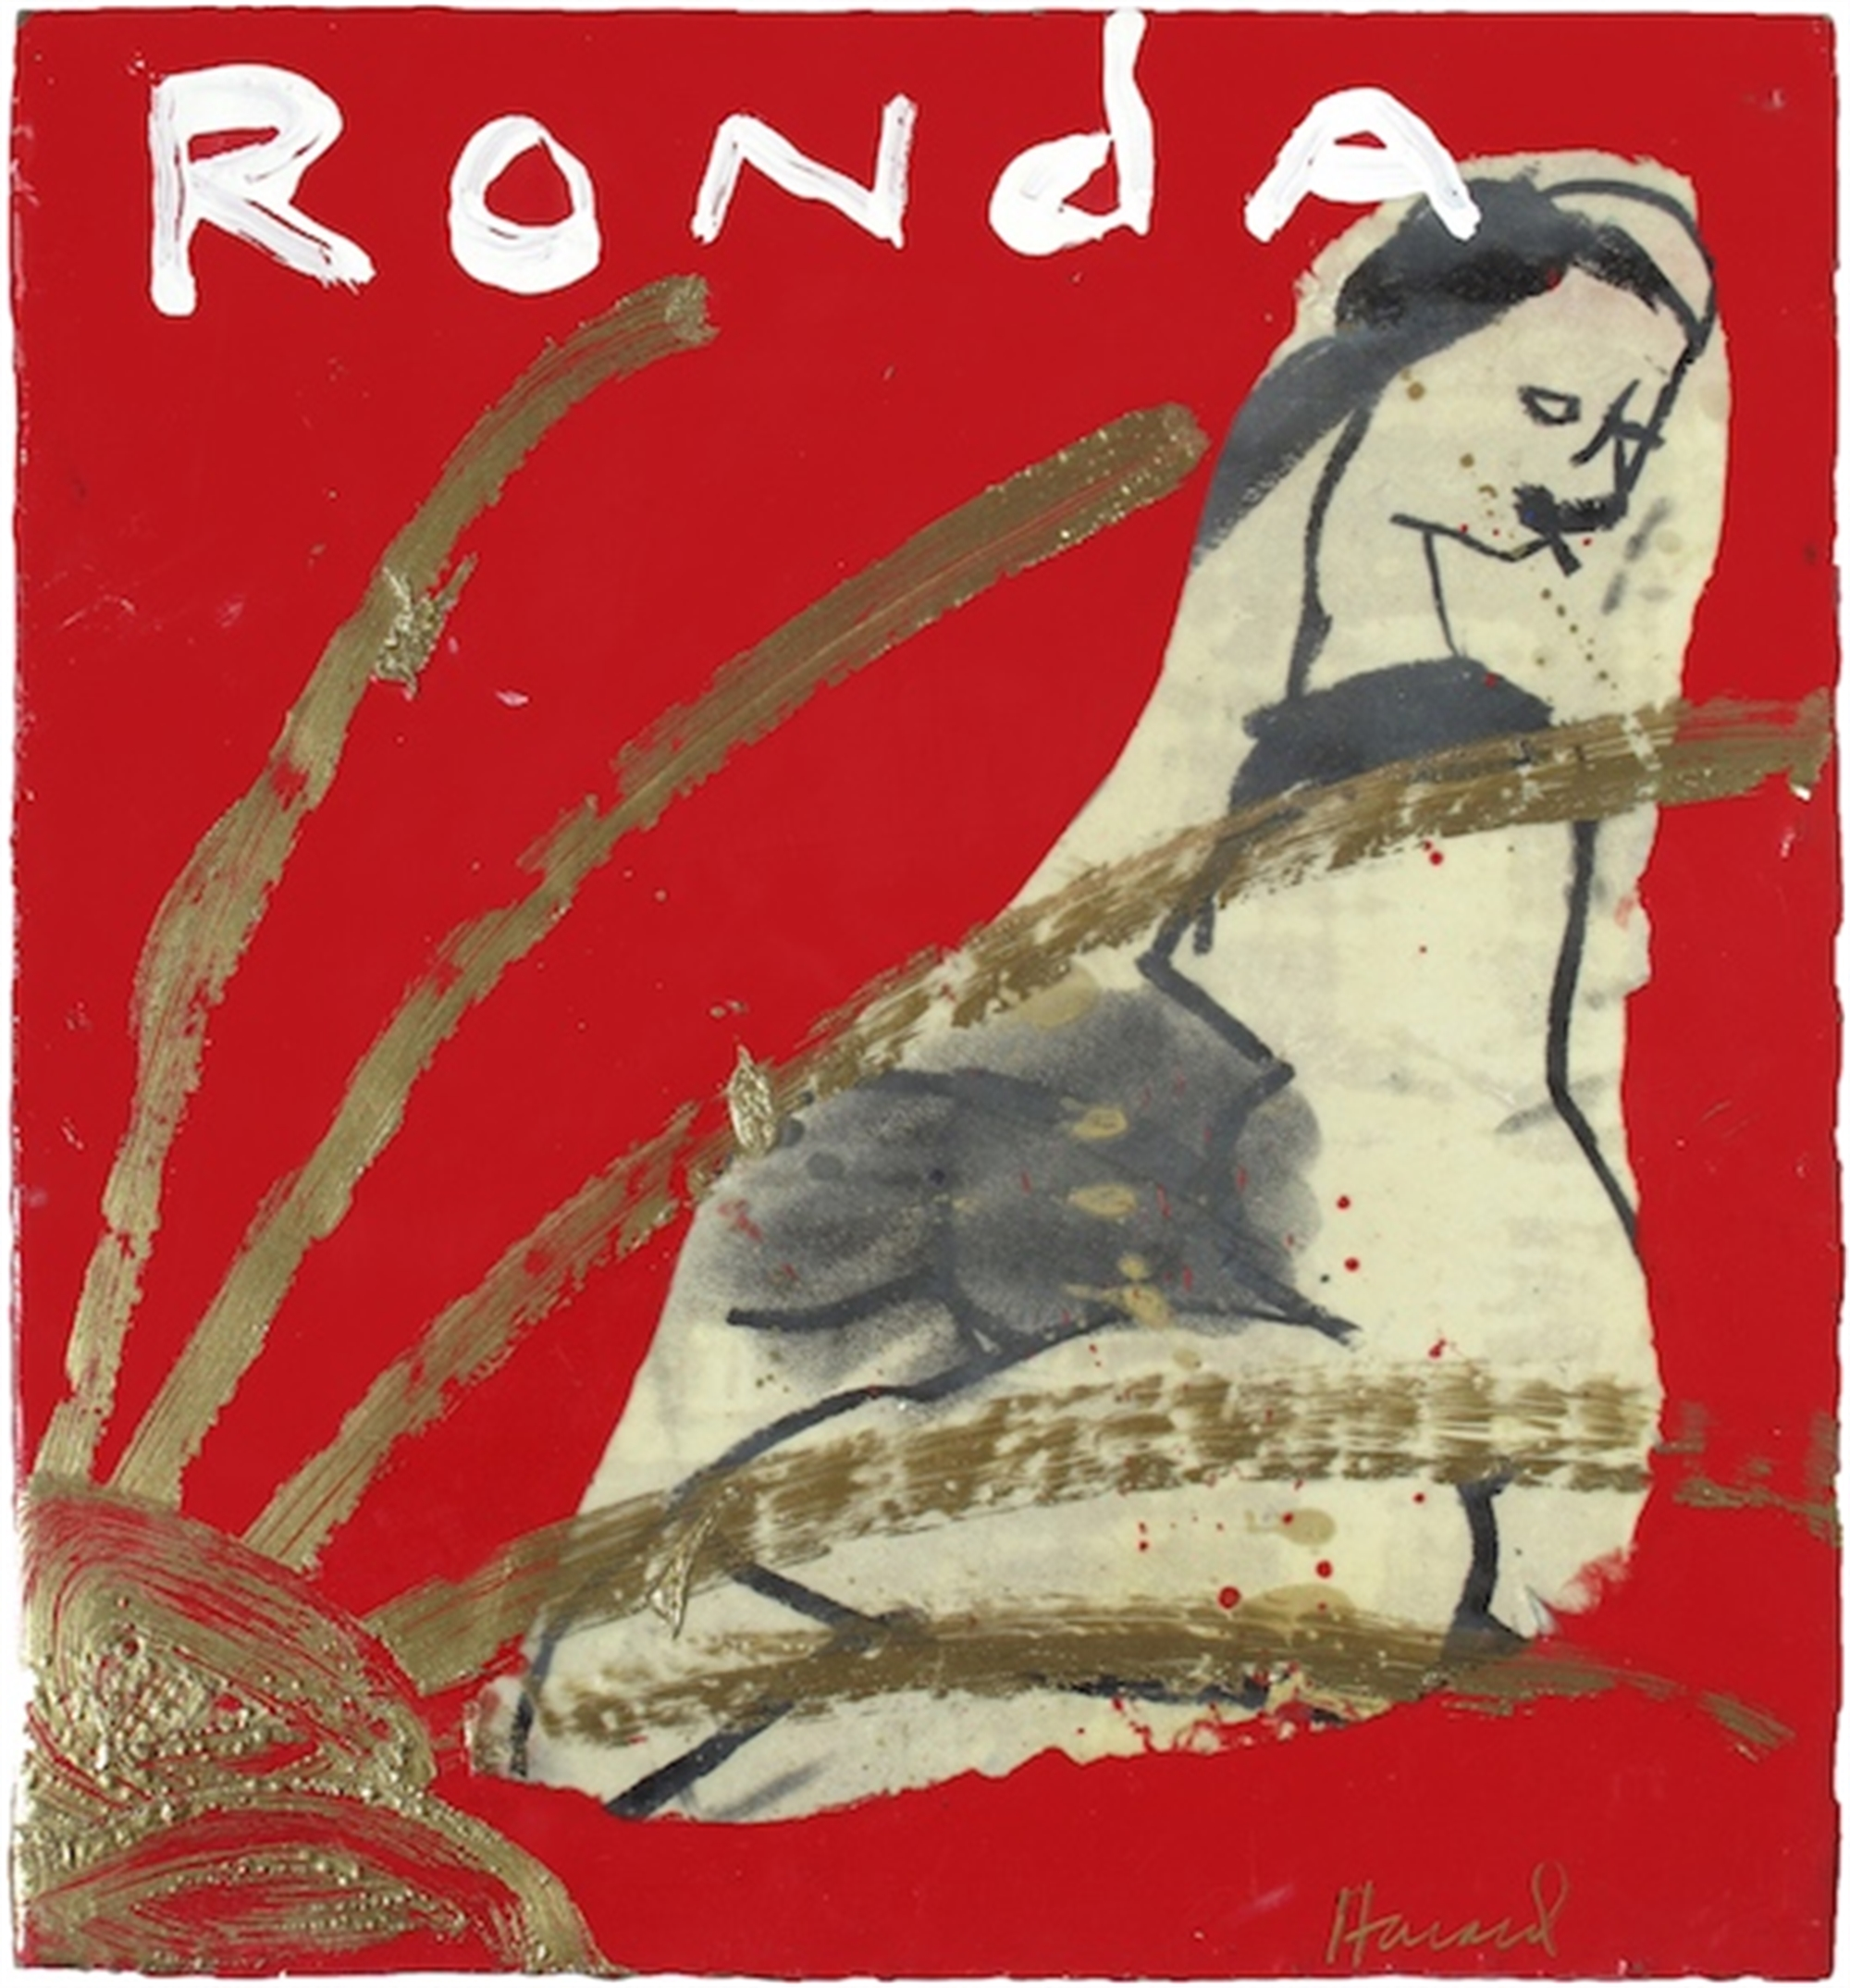 Red Ronda by James Havard